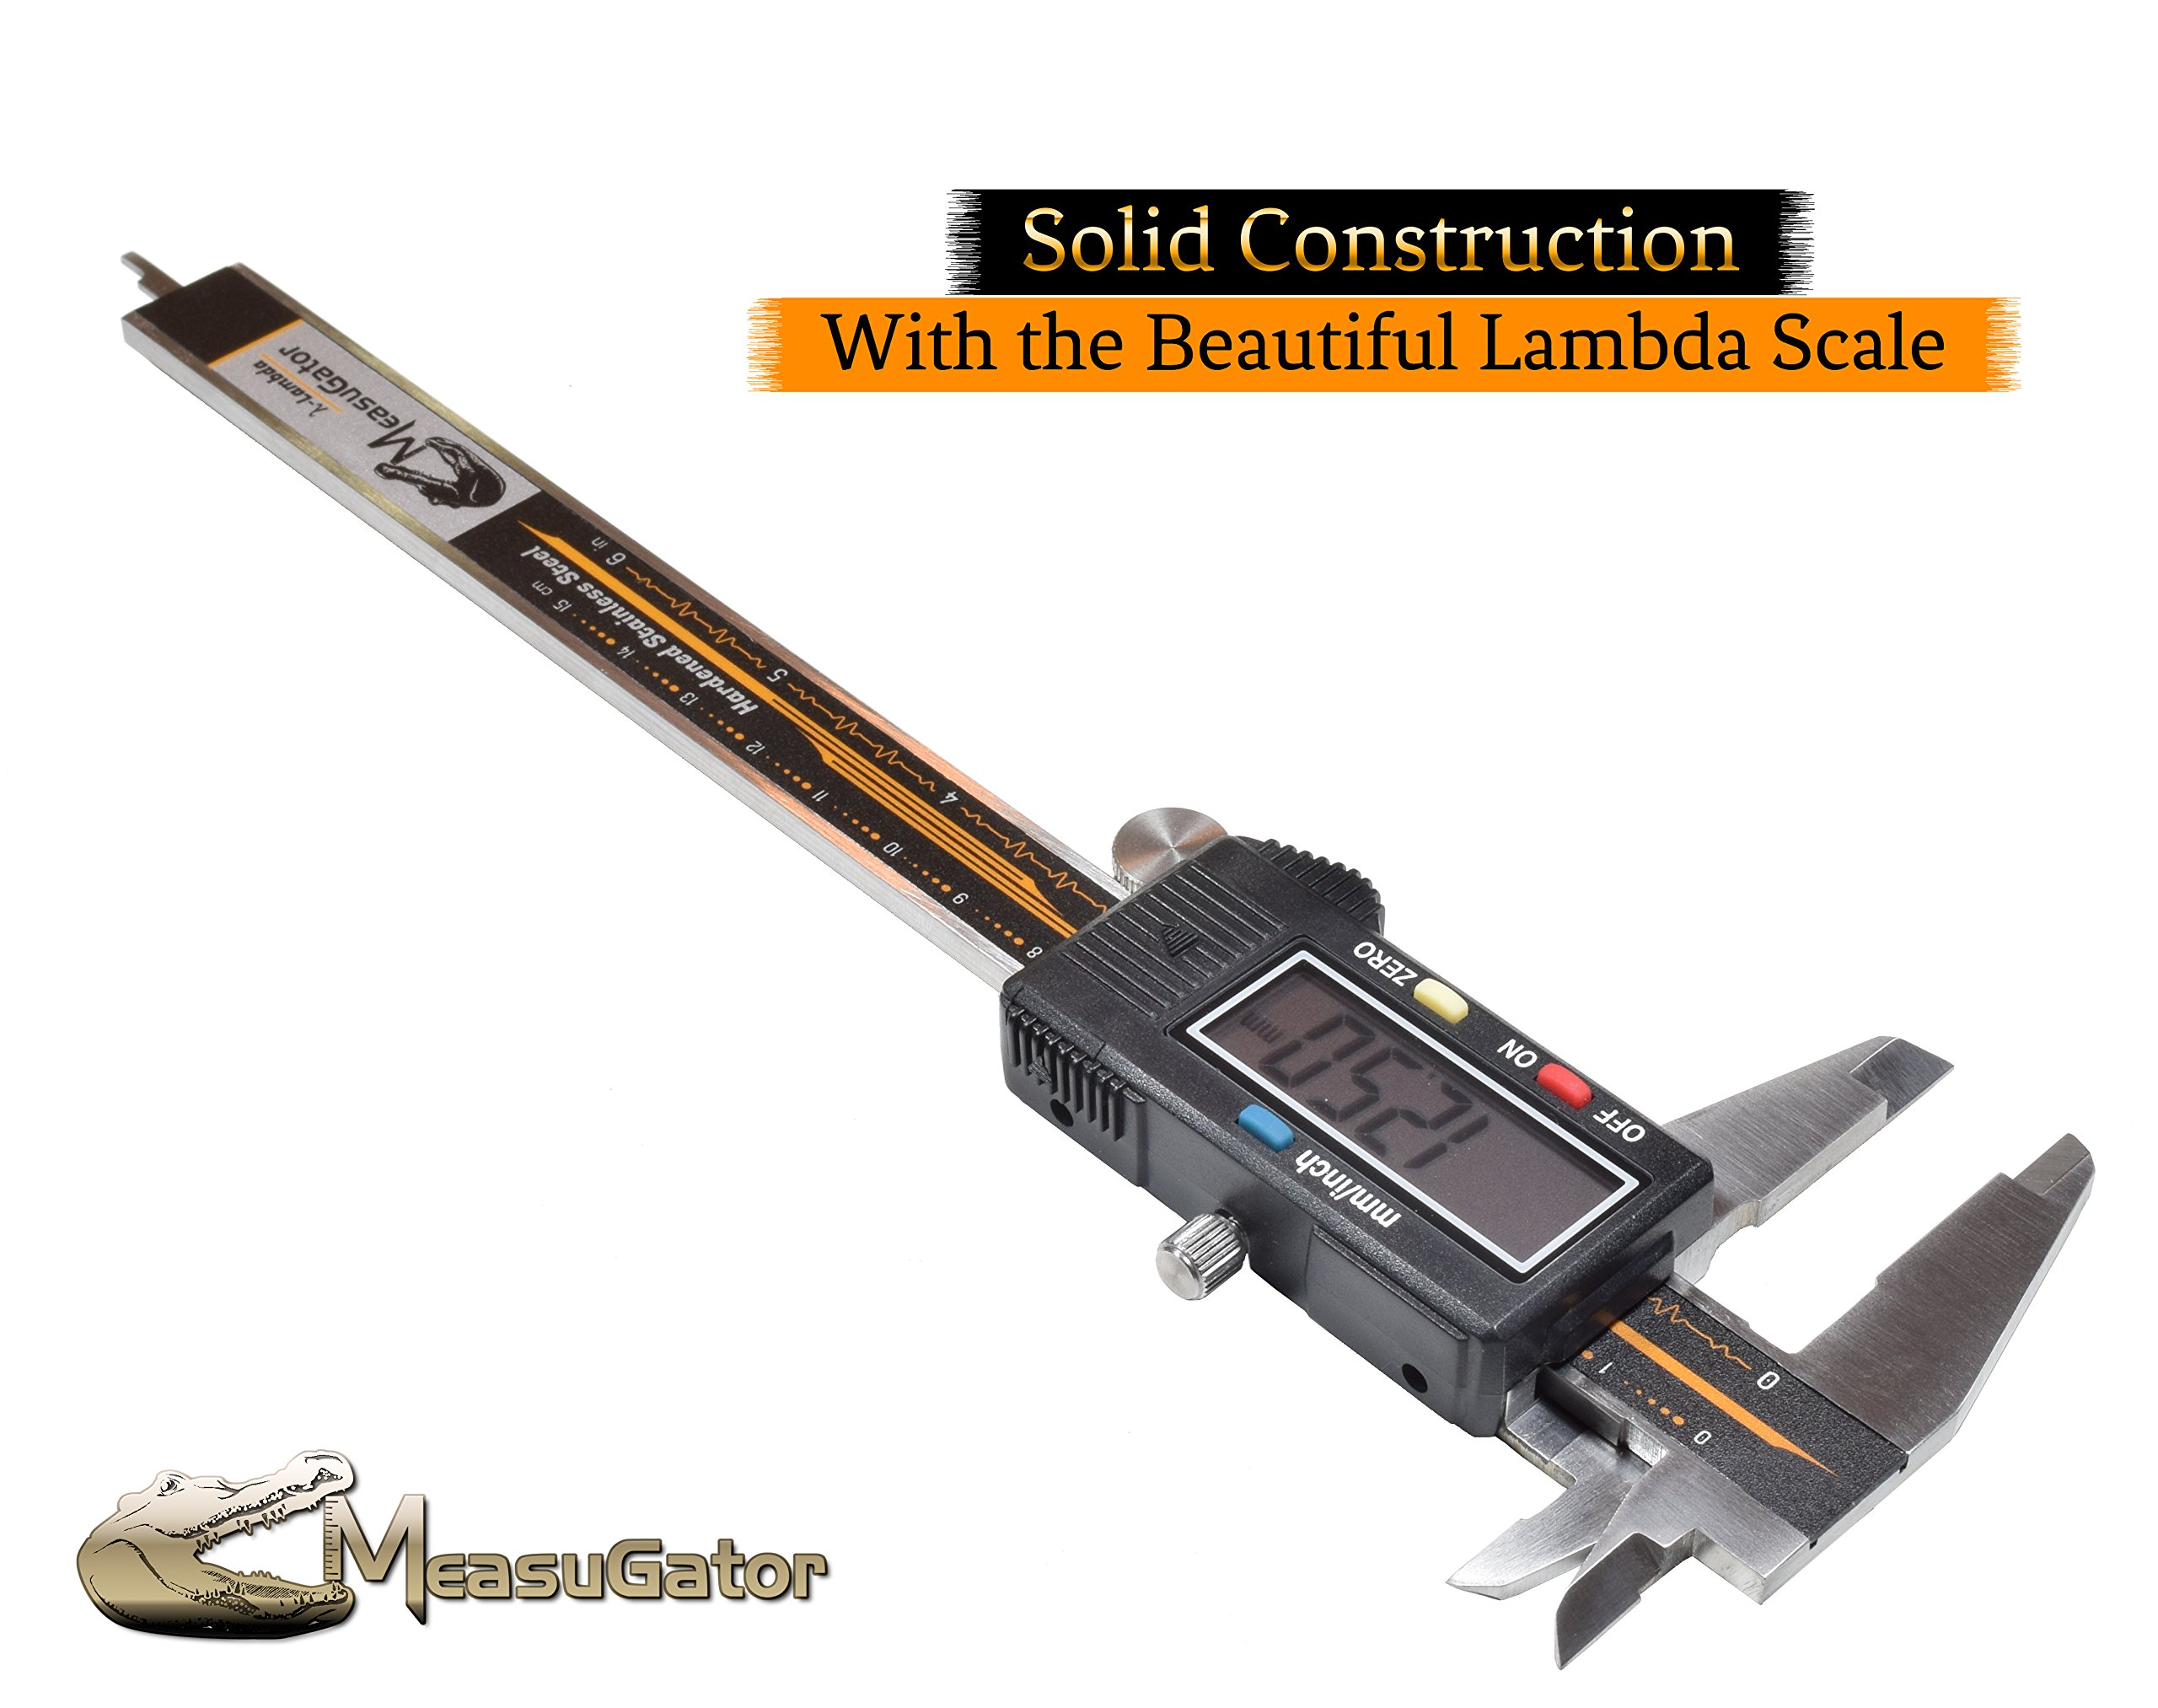 MeasuGator Lambda Digital Caliper, 3 Addons, Verifiable Accuracy, Automatic Off/On, 6 Inch/150 mm Range, SAE/Metric Modes, Premium Quality Stainless Steel Calipers, w/Spare Batteries, Feeler Gauge by MeasuGator (Image #3)